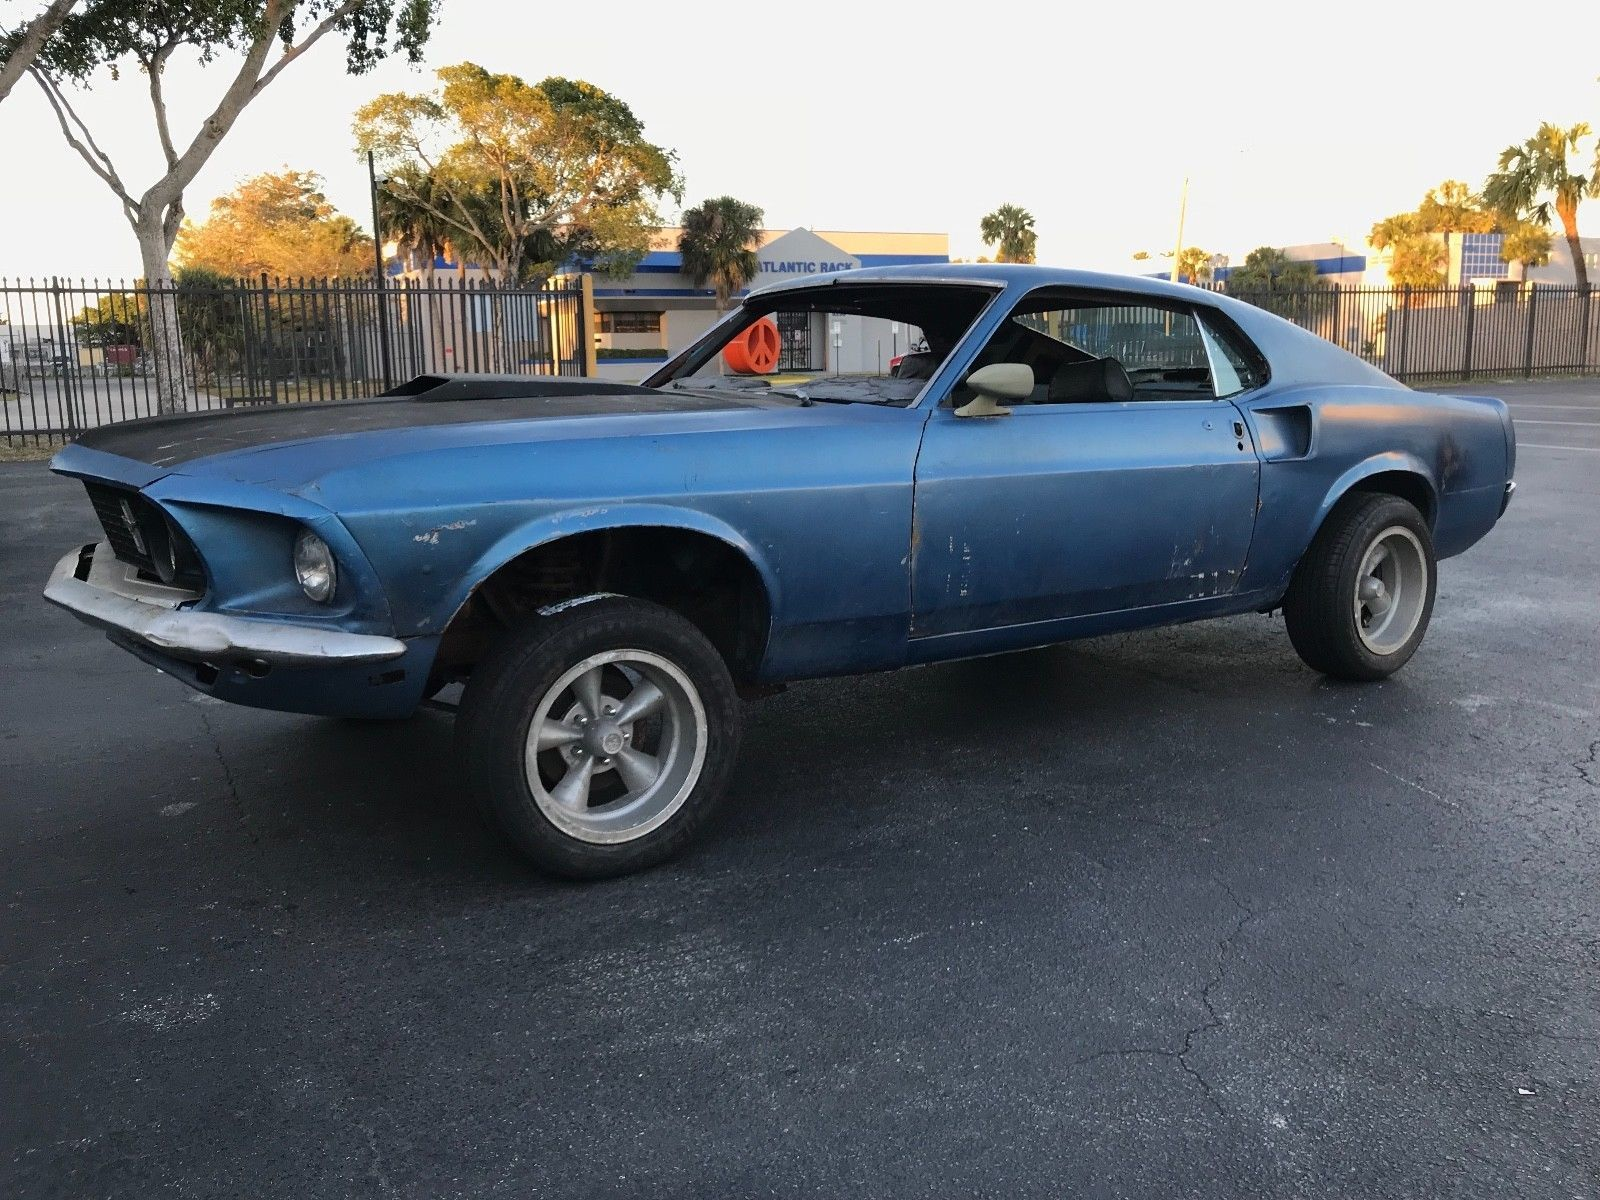 1969 Ford Mustang Us Salvage Autos Pinterest 2001 Fuel Filter Replacement Ebay Sports Roof Mach 1 Fastback Project 69 Carparts